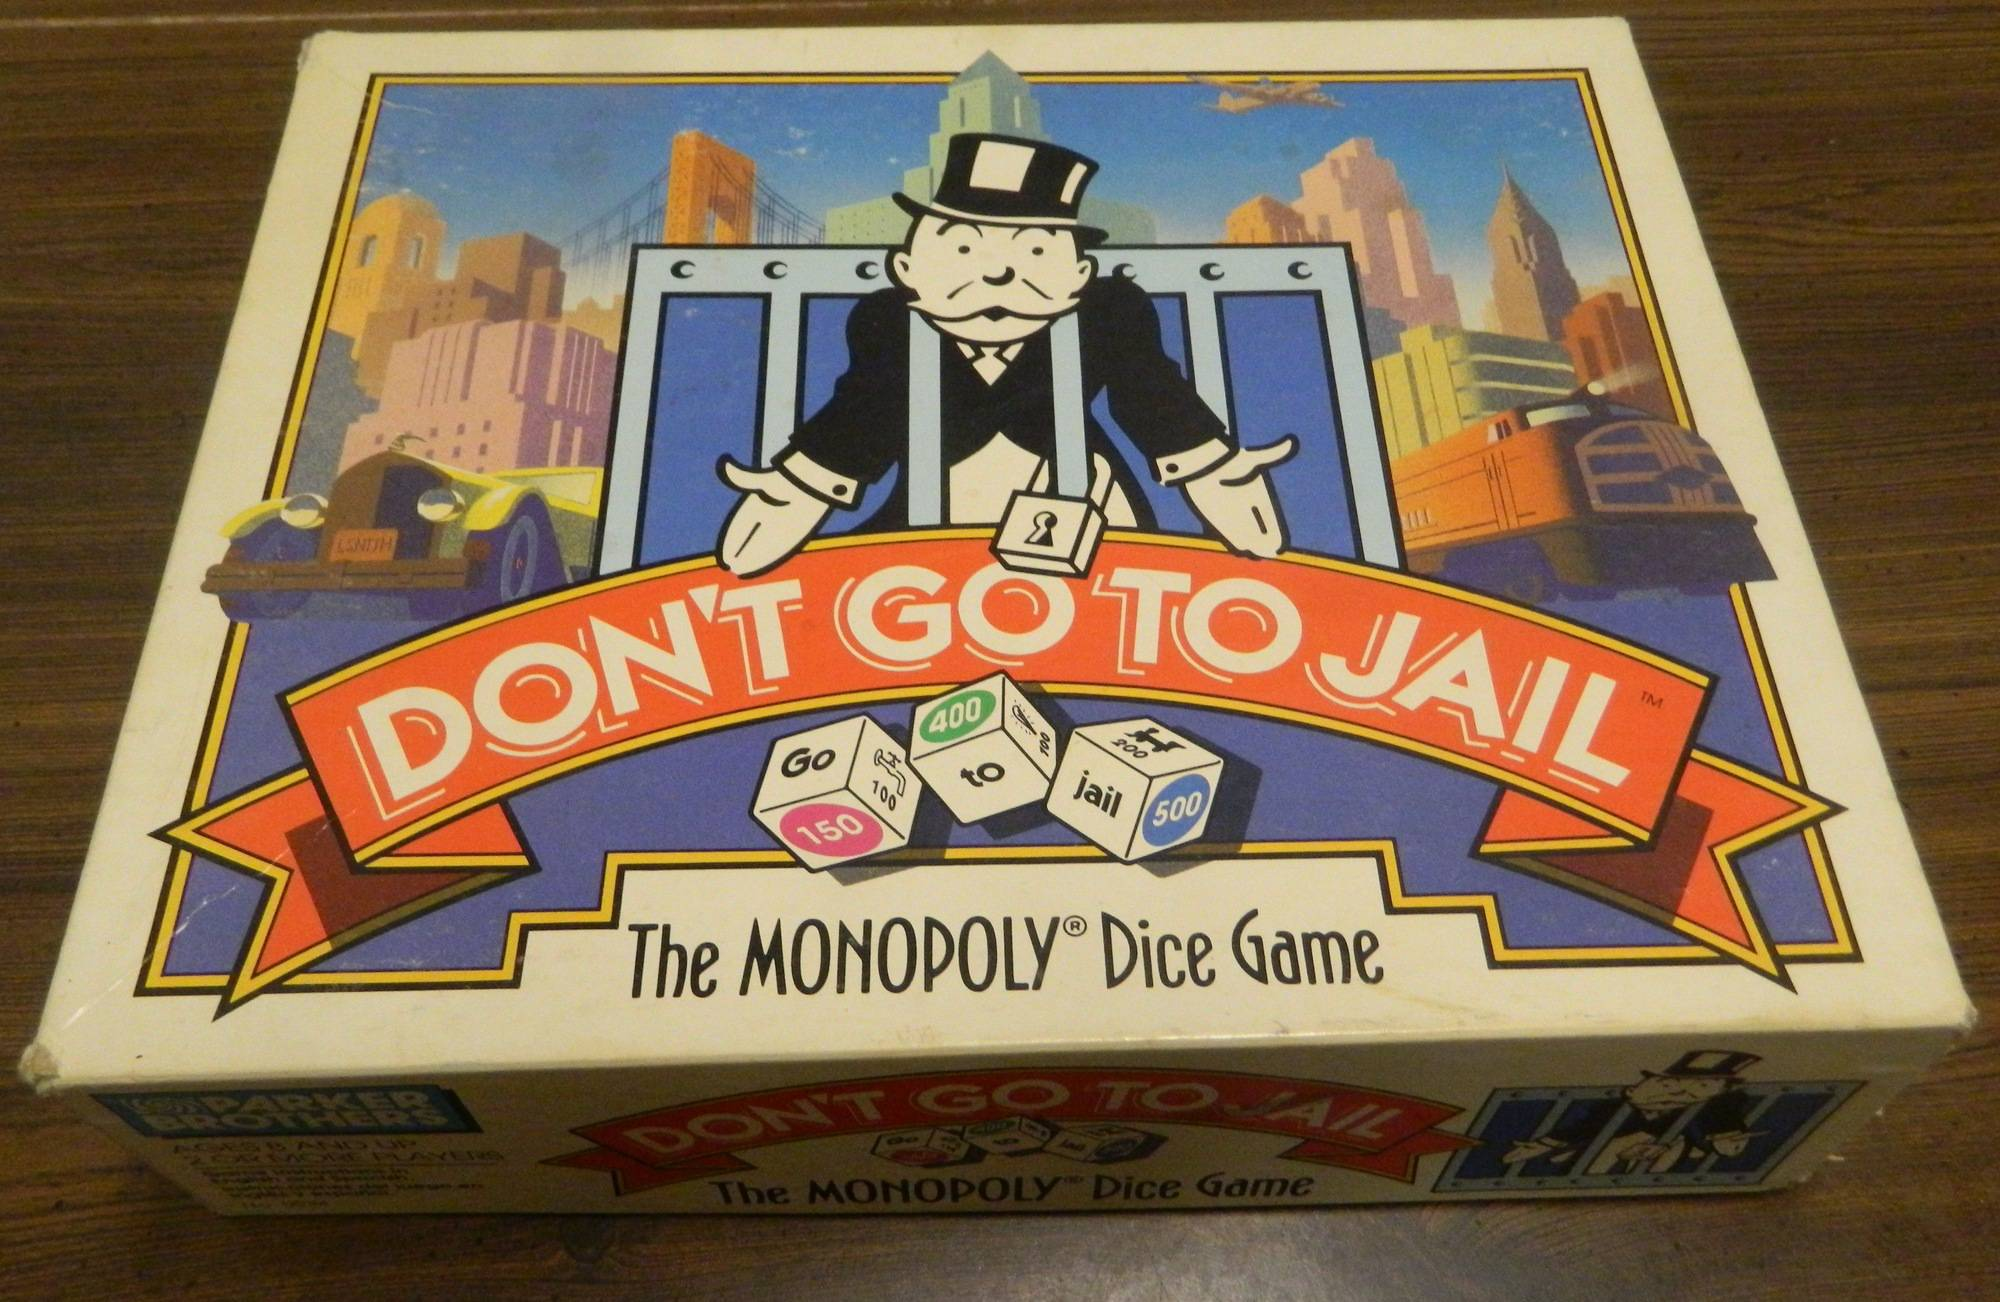 Box for Don't Go to Jail